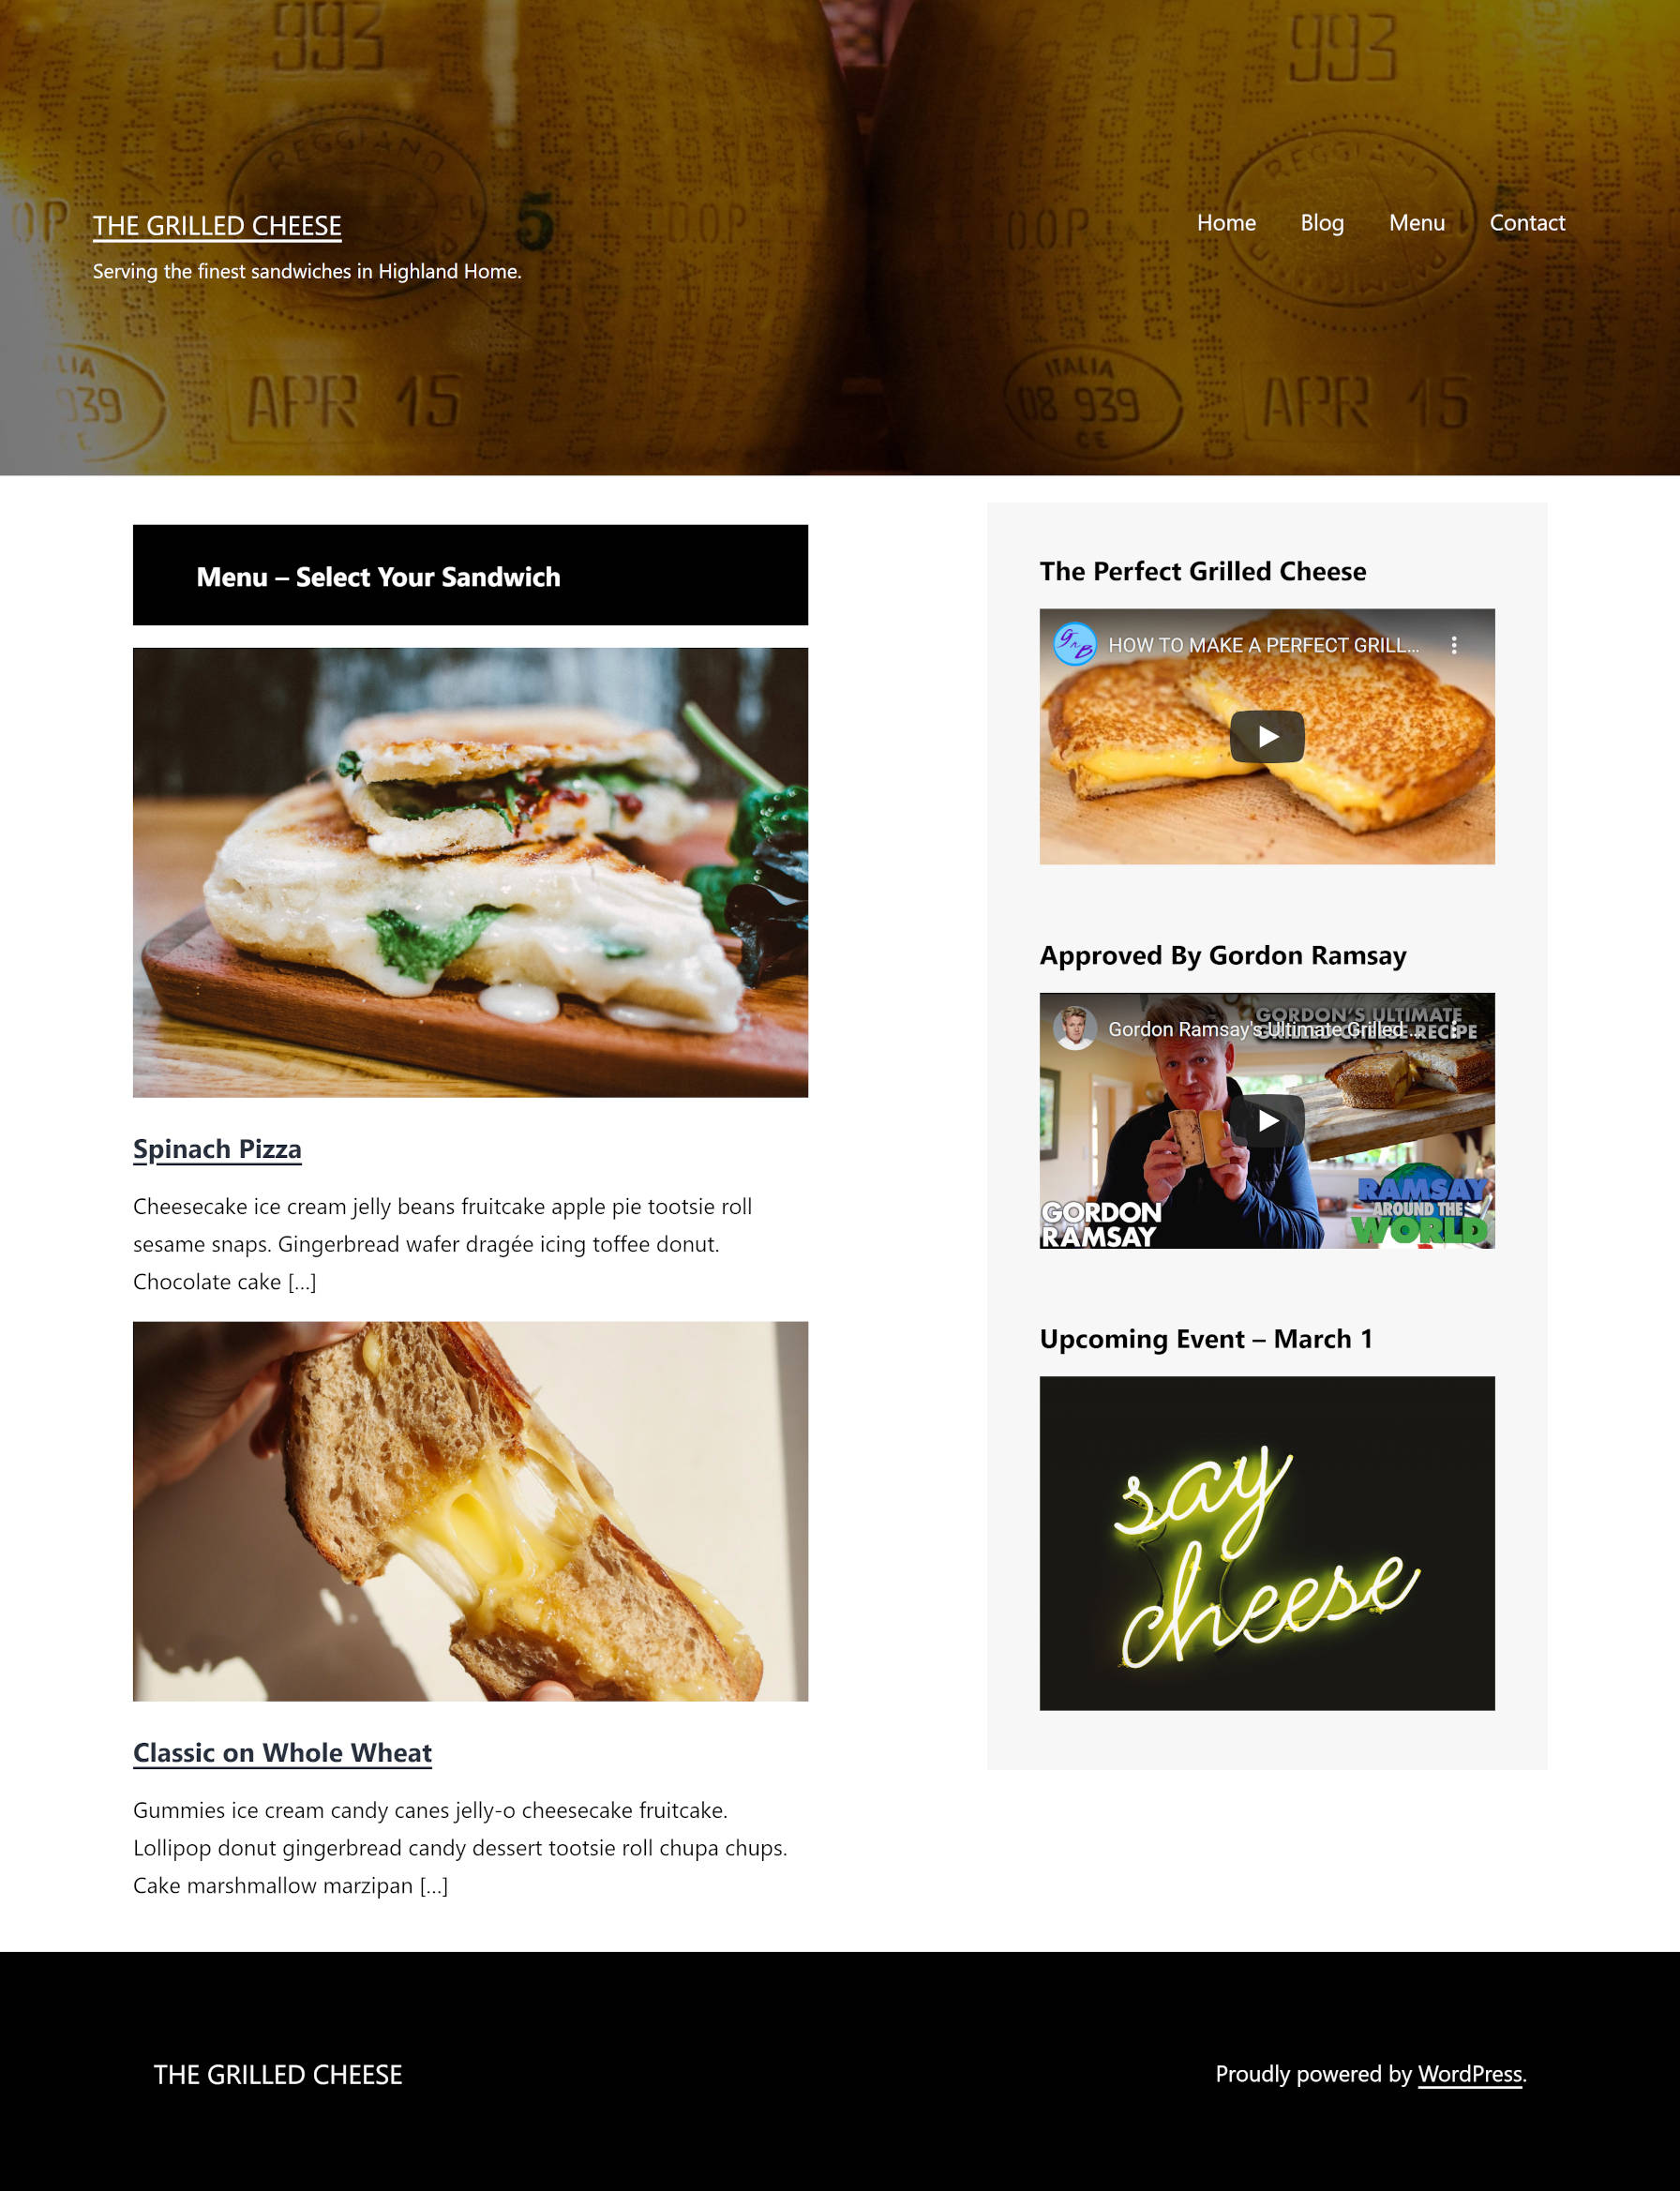 Custom-designed homepage via Gutenberg's site editor for a fictitious restaurant.